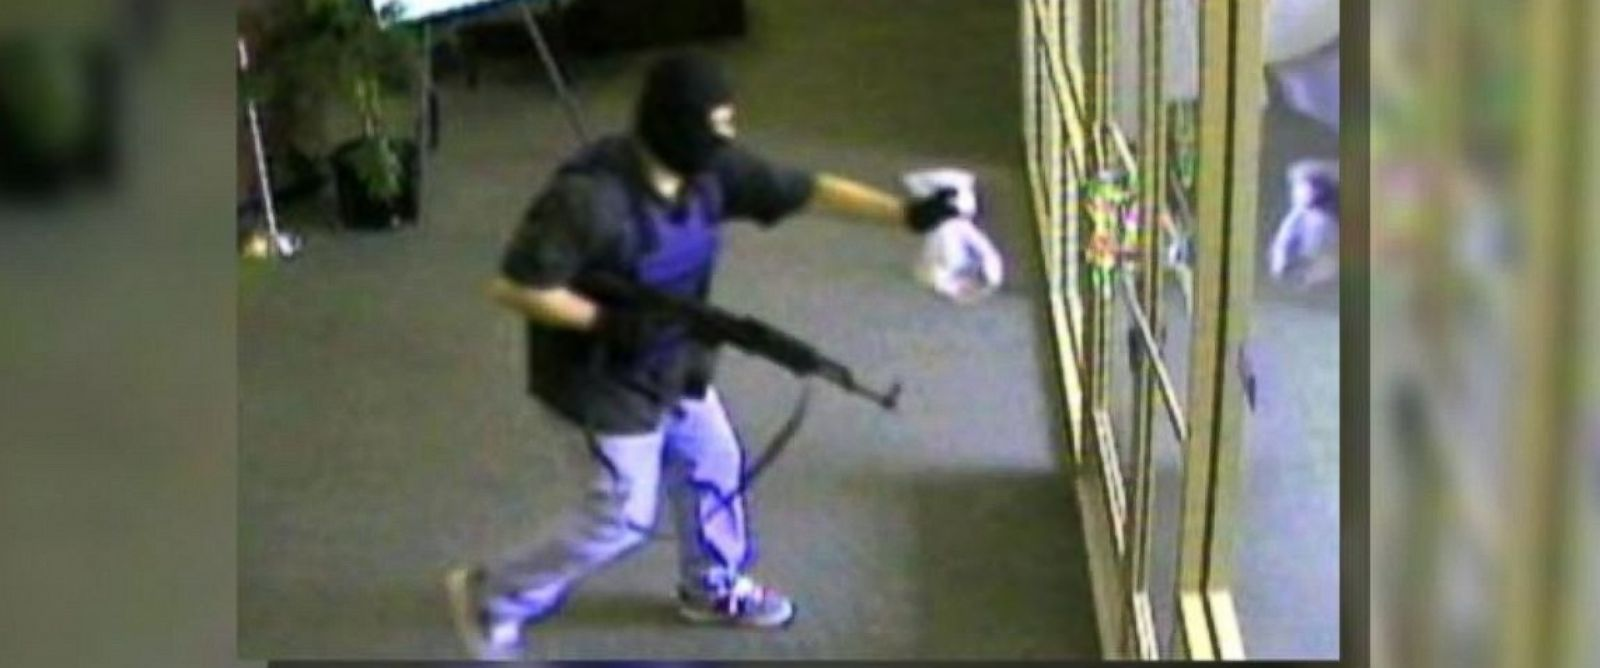 "PHOTO: A manhunt is underway for a bank robber known as the ""AK-47 Bandit"" following a heist in Nebraska on Aug. 22, 2014."